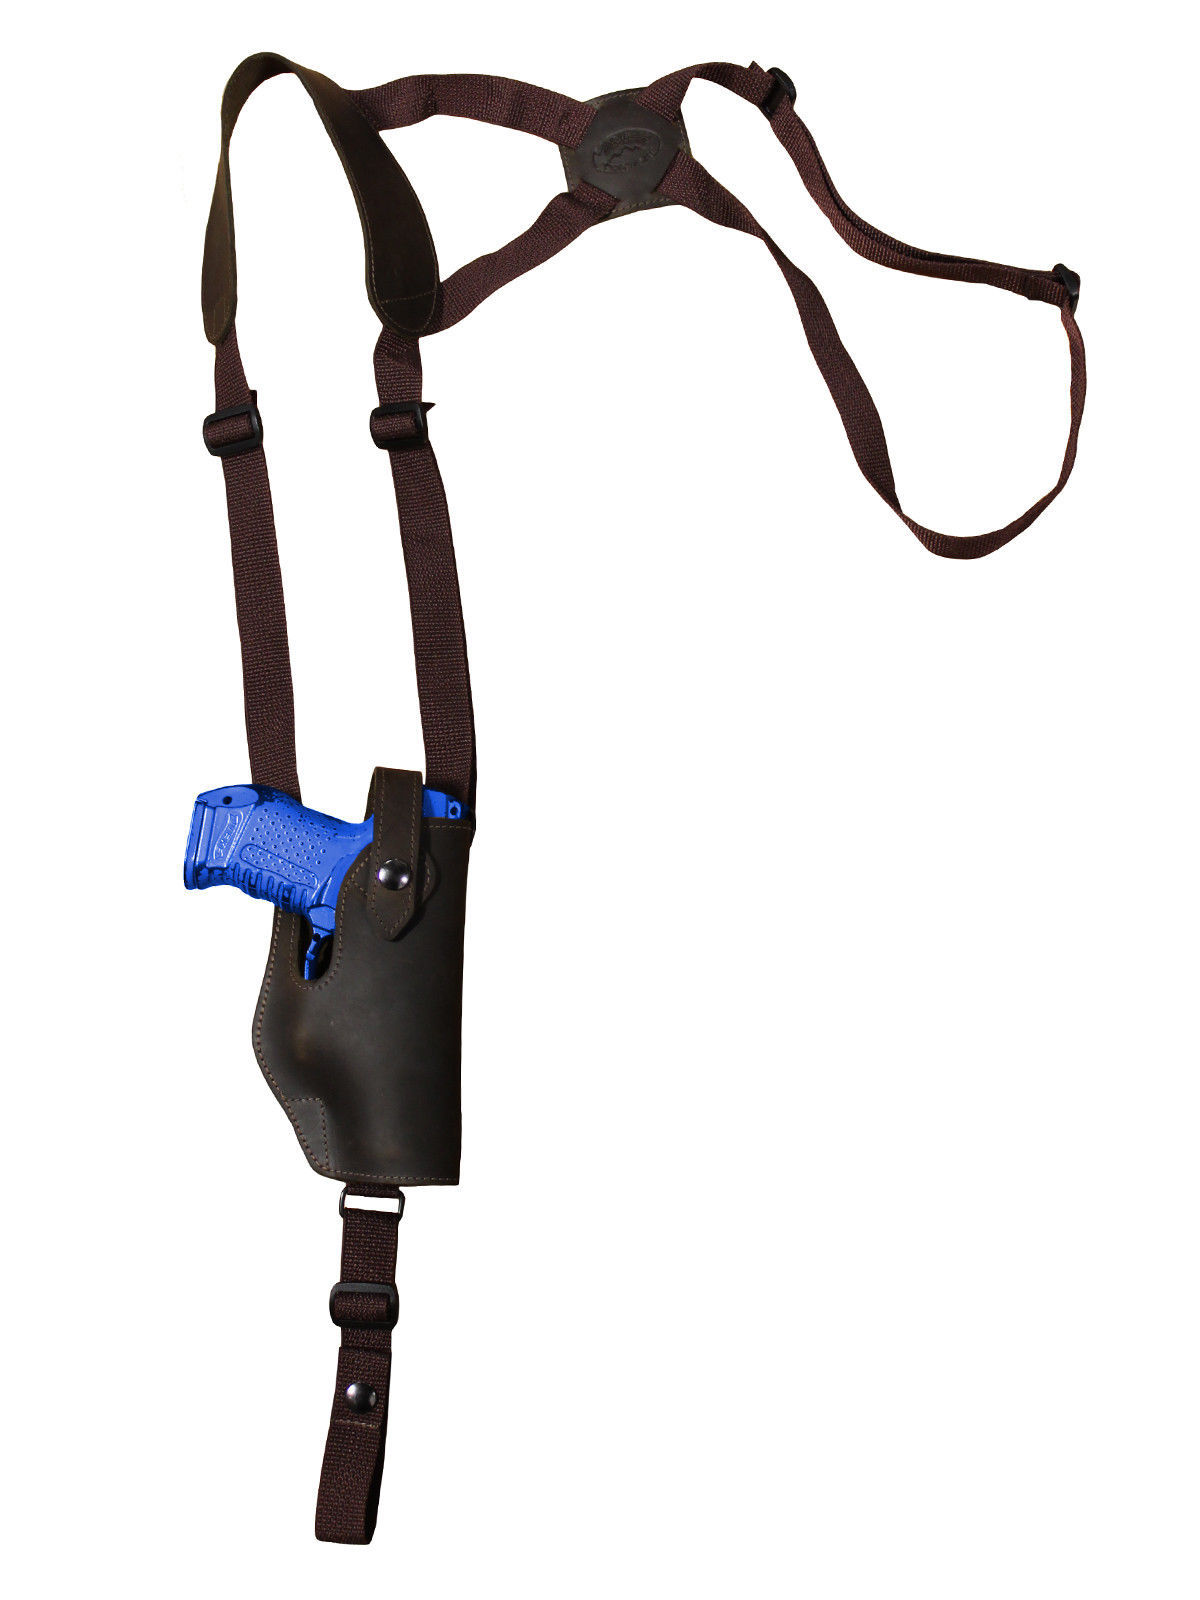 New Barsony Brown Leather Shoulder Holster Colt Springfield 380 UltraComp 9 40